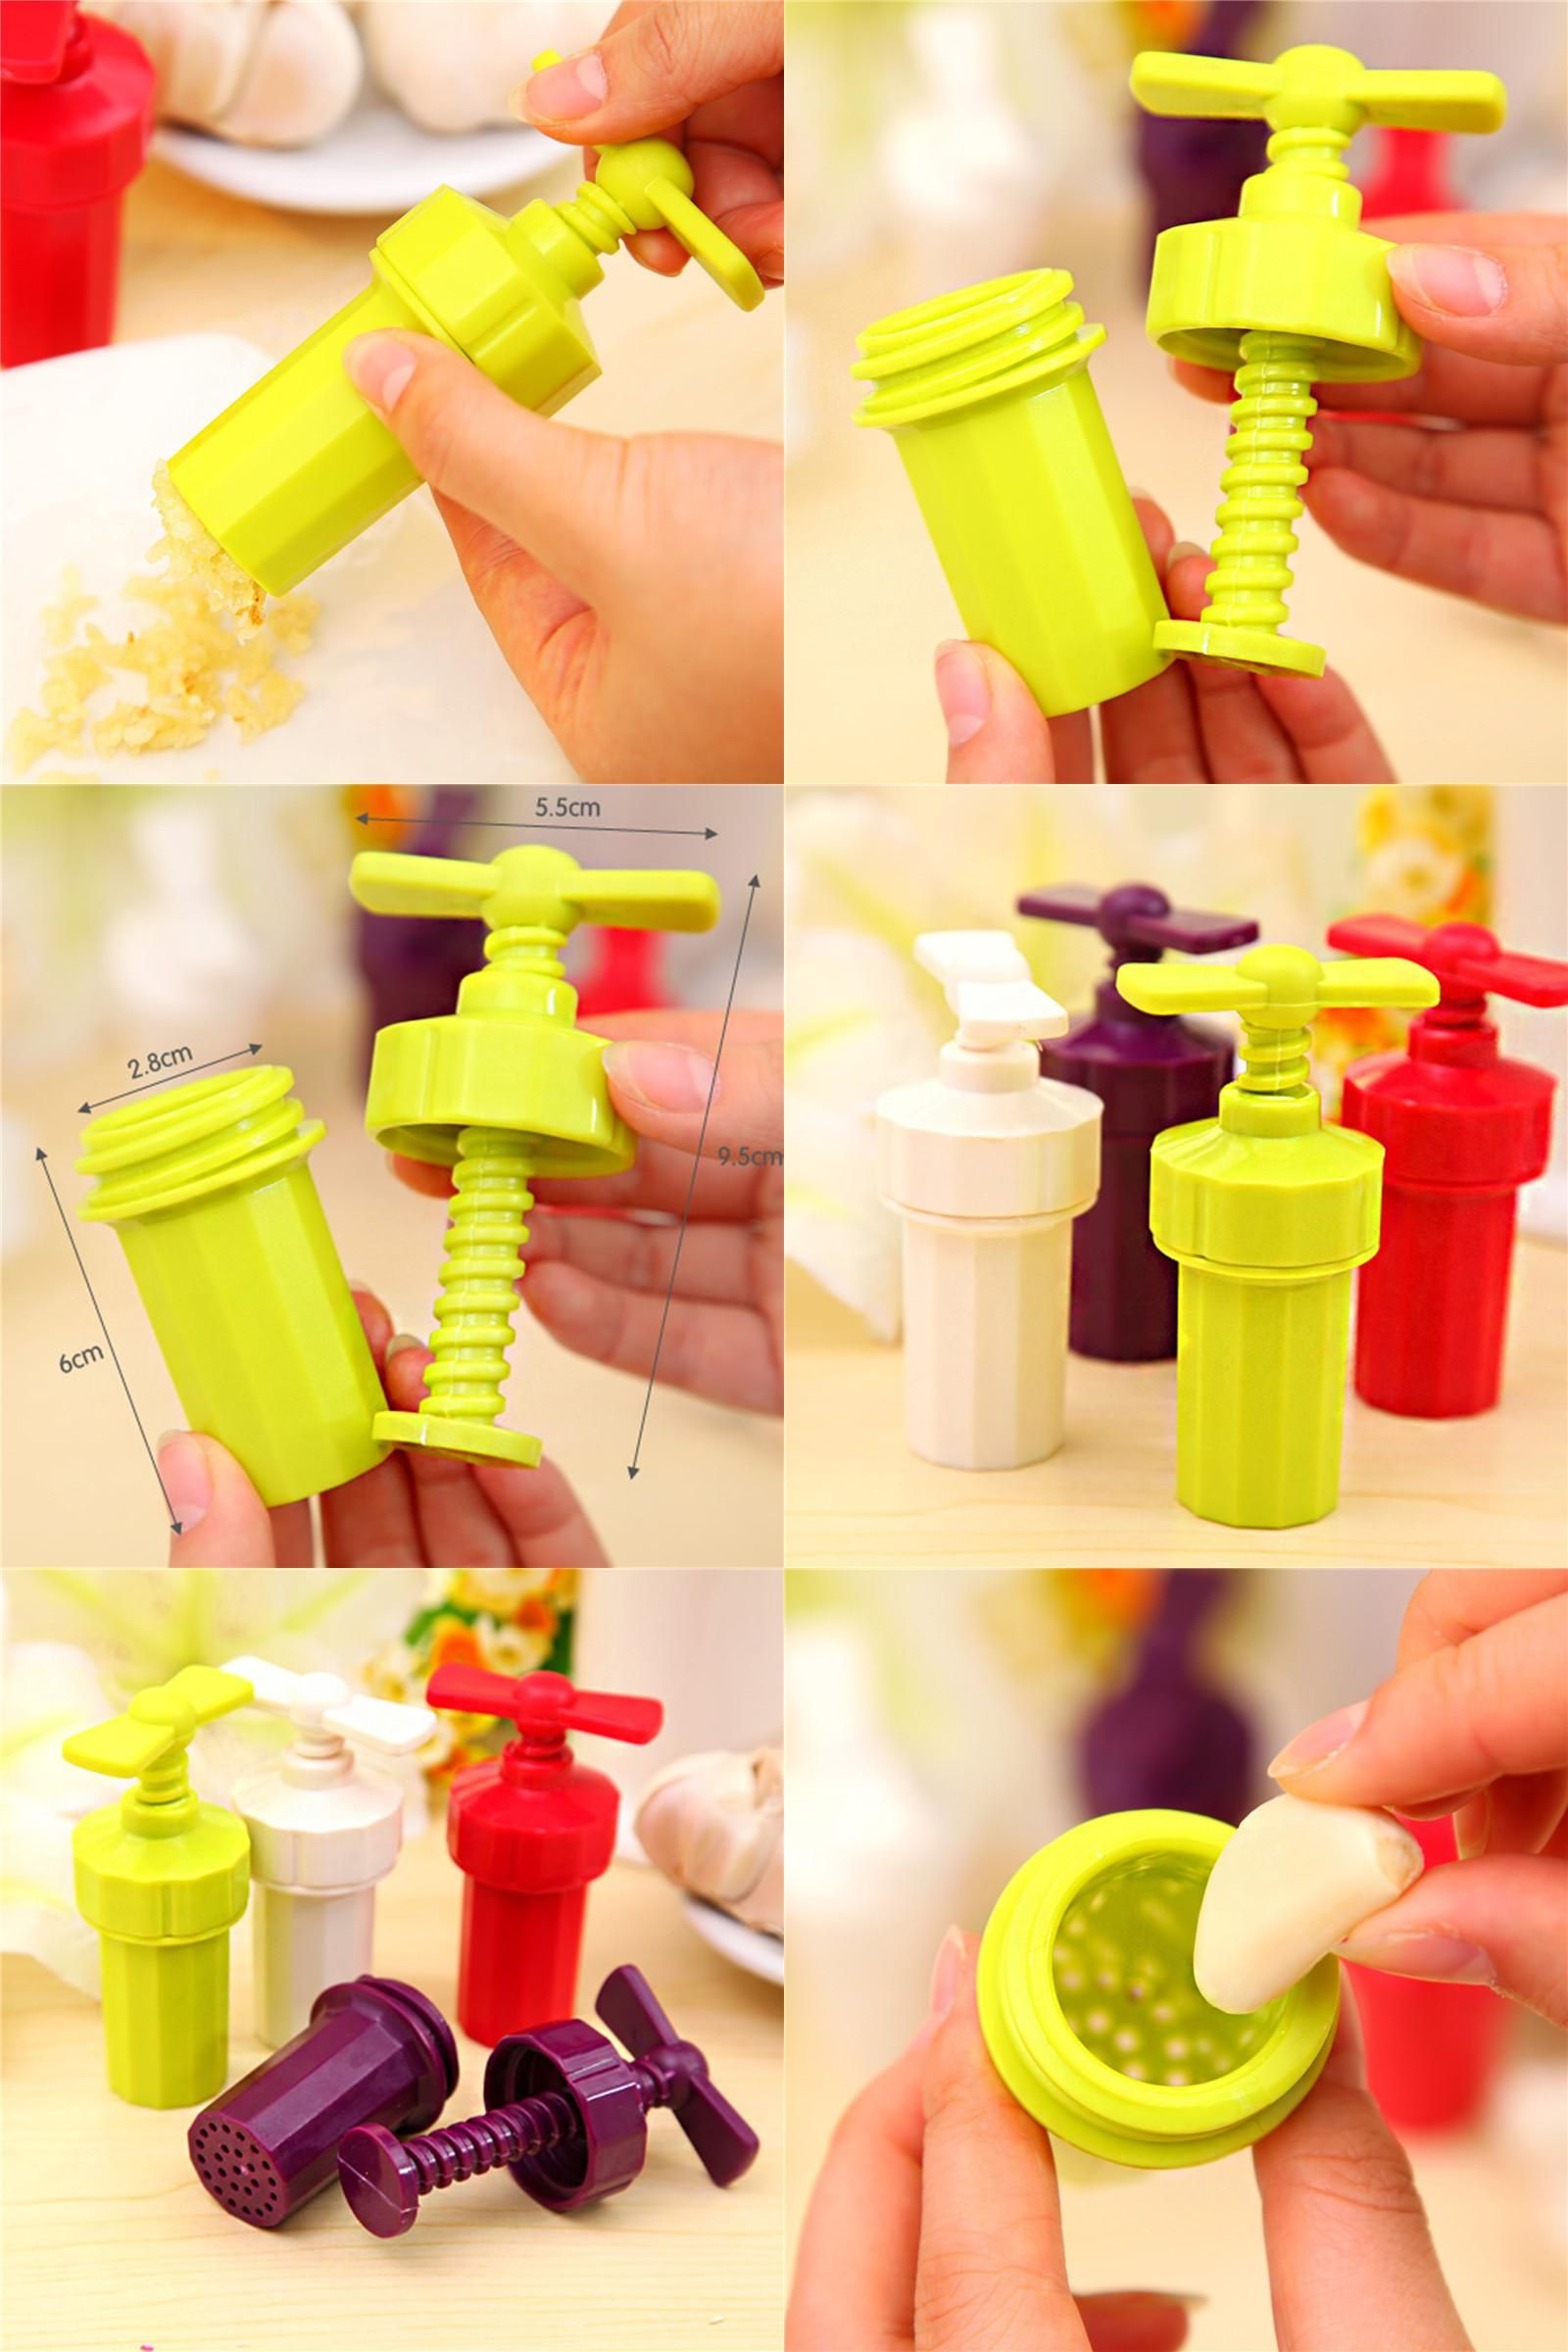 Colorful Kitchen Supplies: [Visit To Buy] ABS Garlic Presses Onion Fruit Vegetable